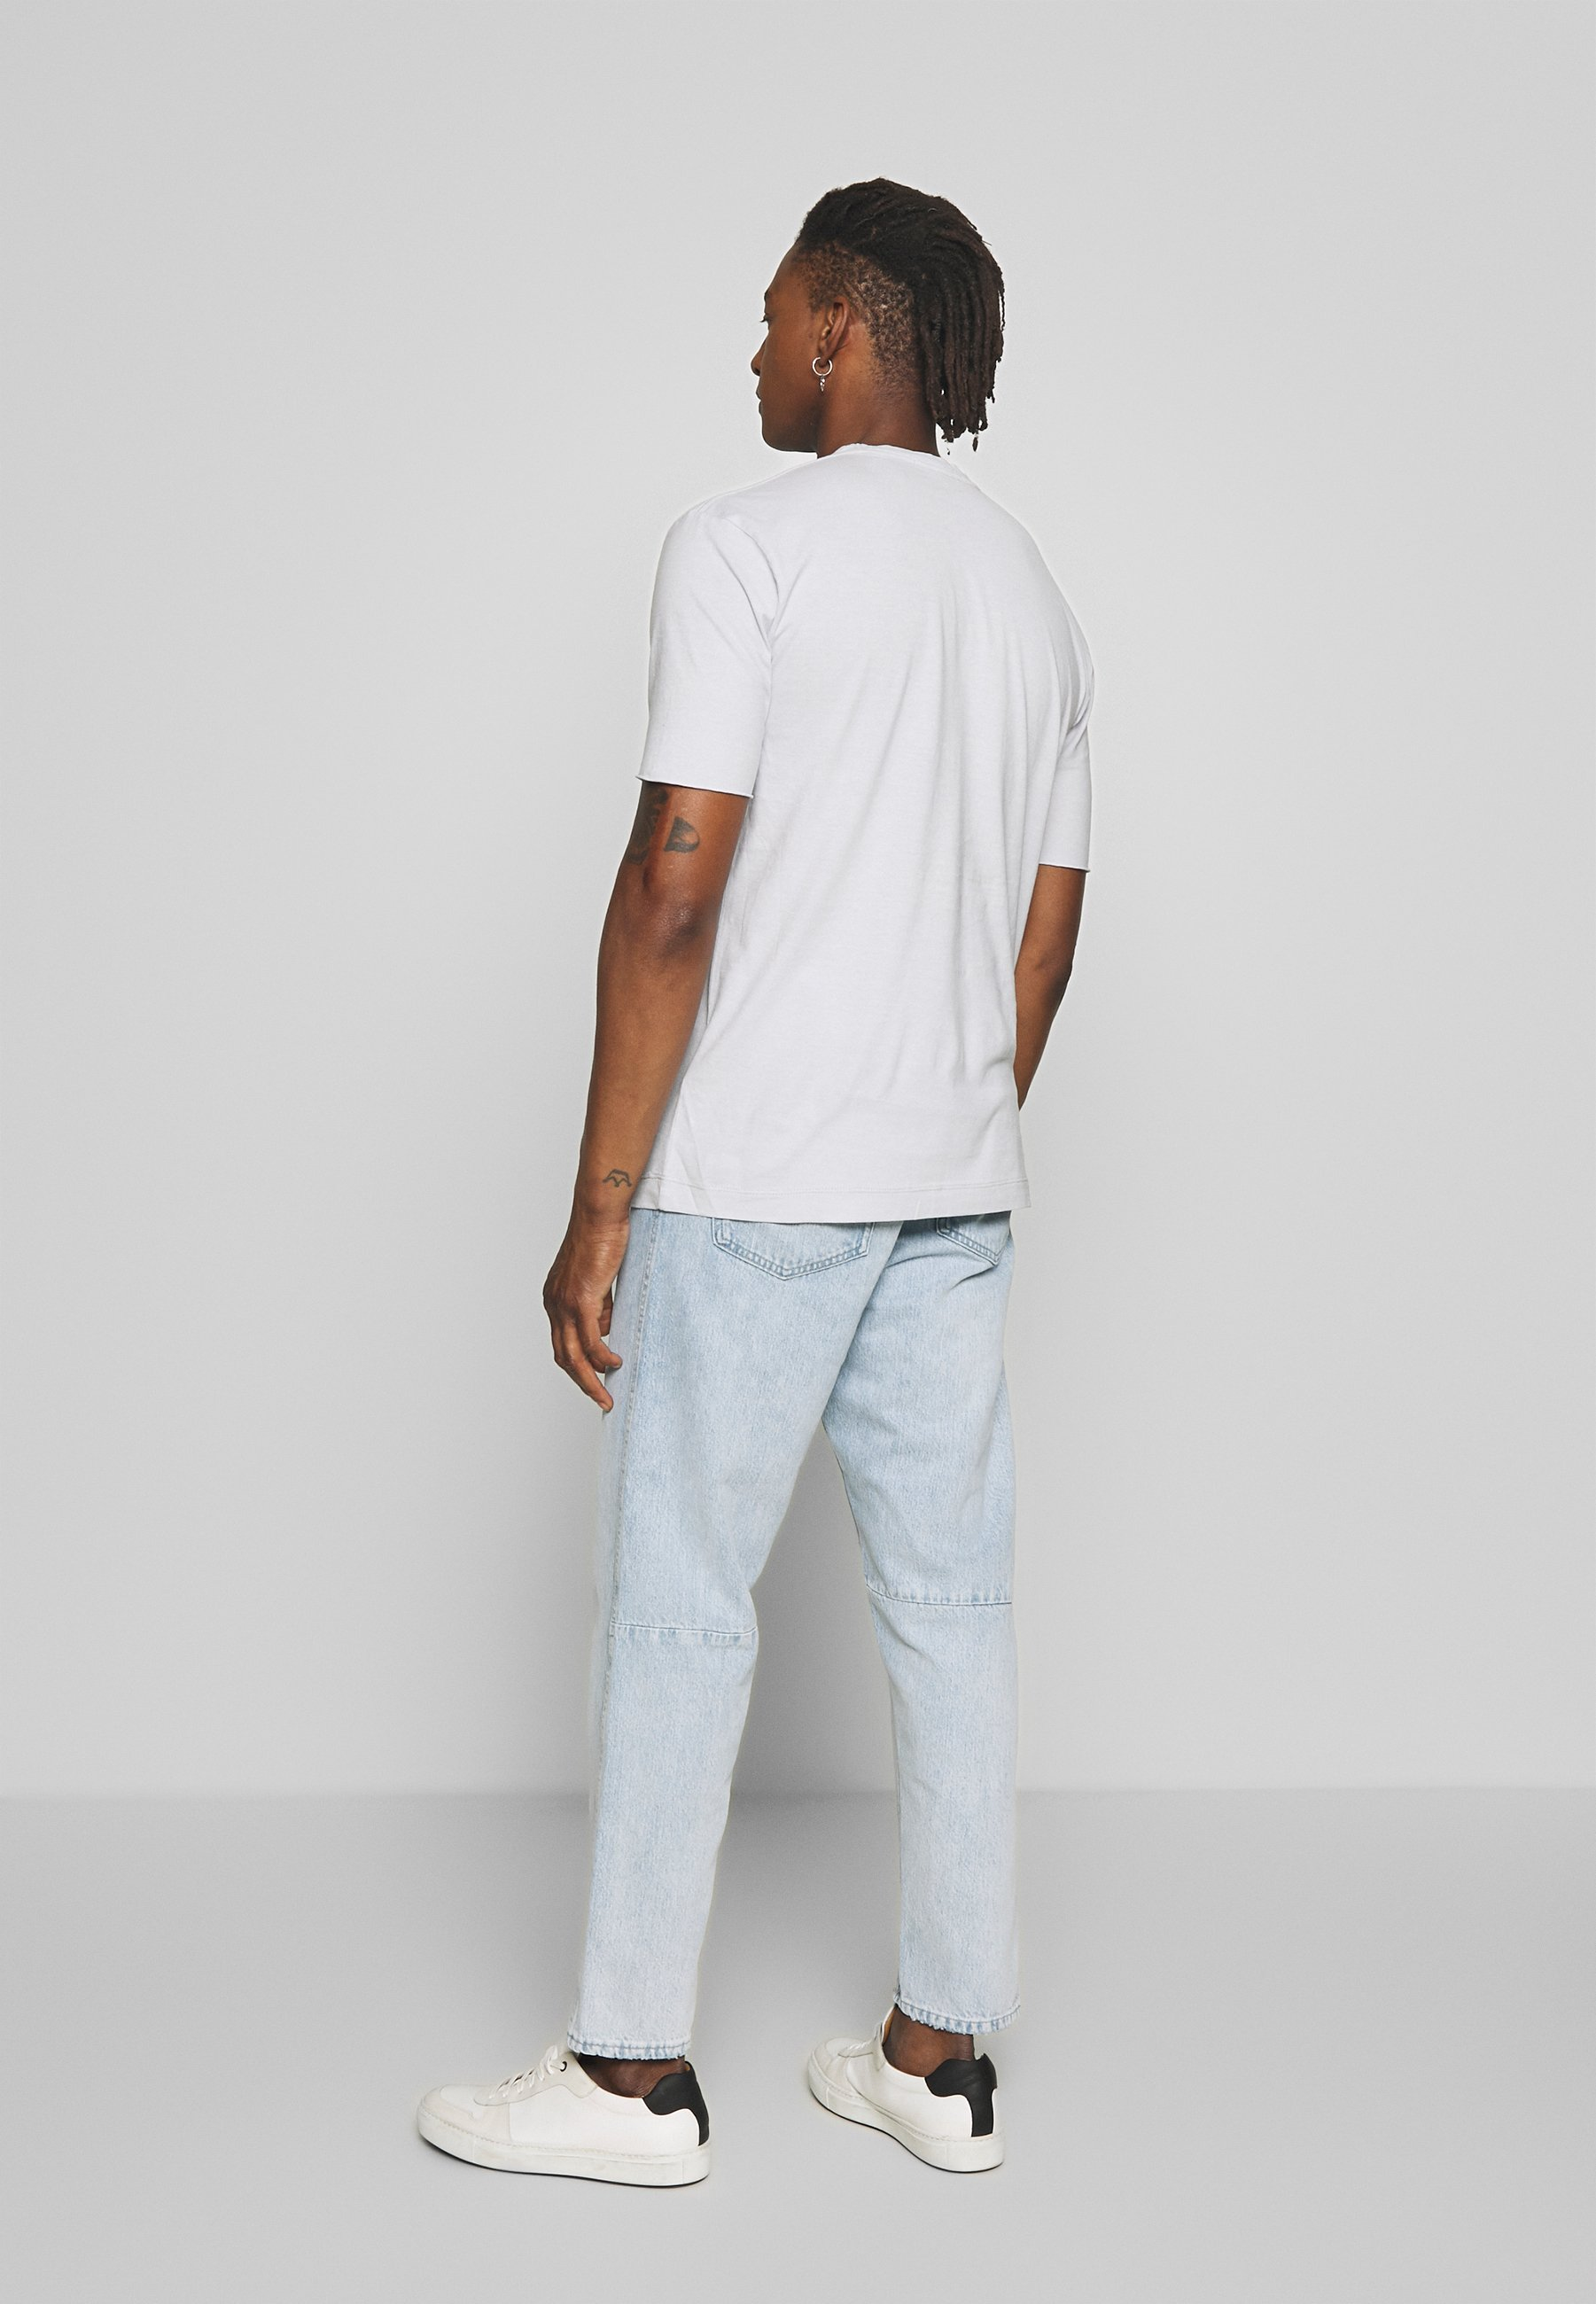 CLOSED X-LENT - Jeans fuselé - light blue